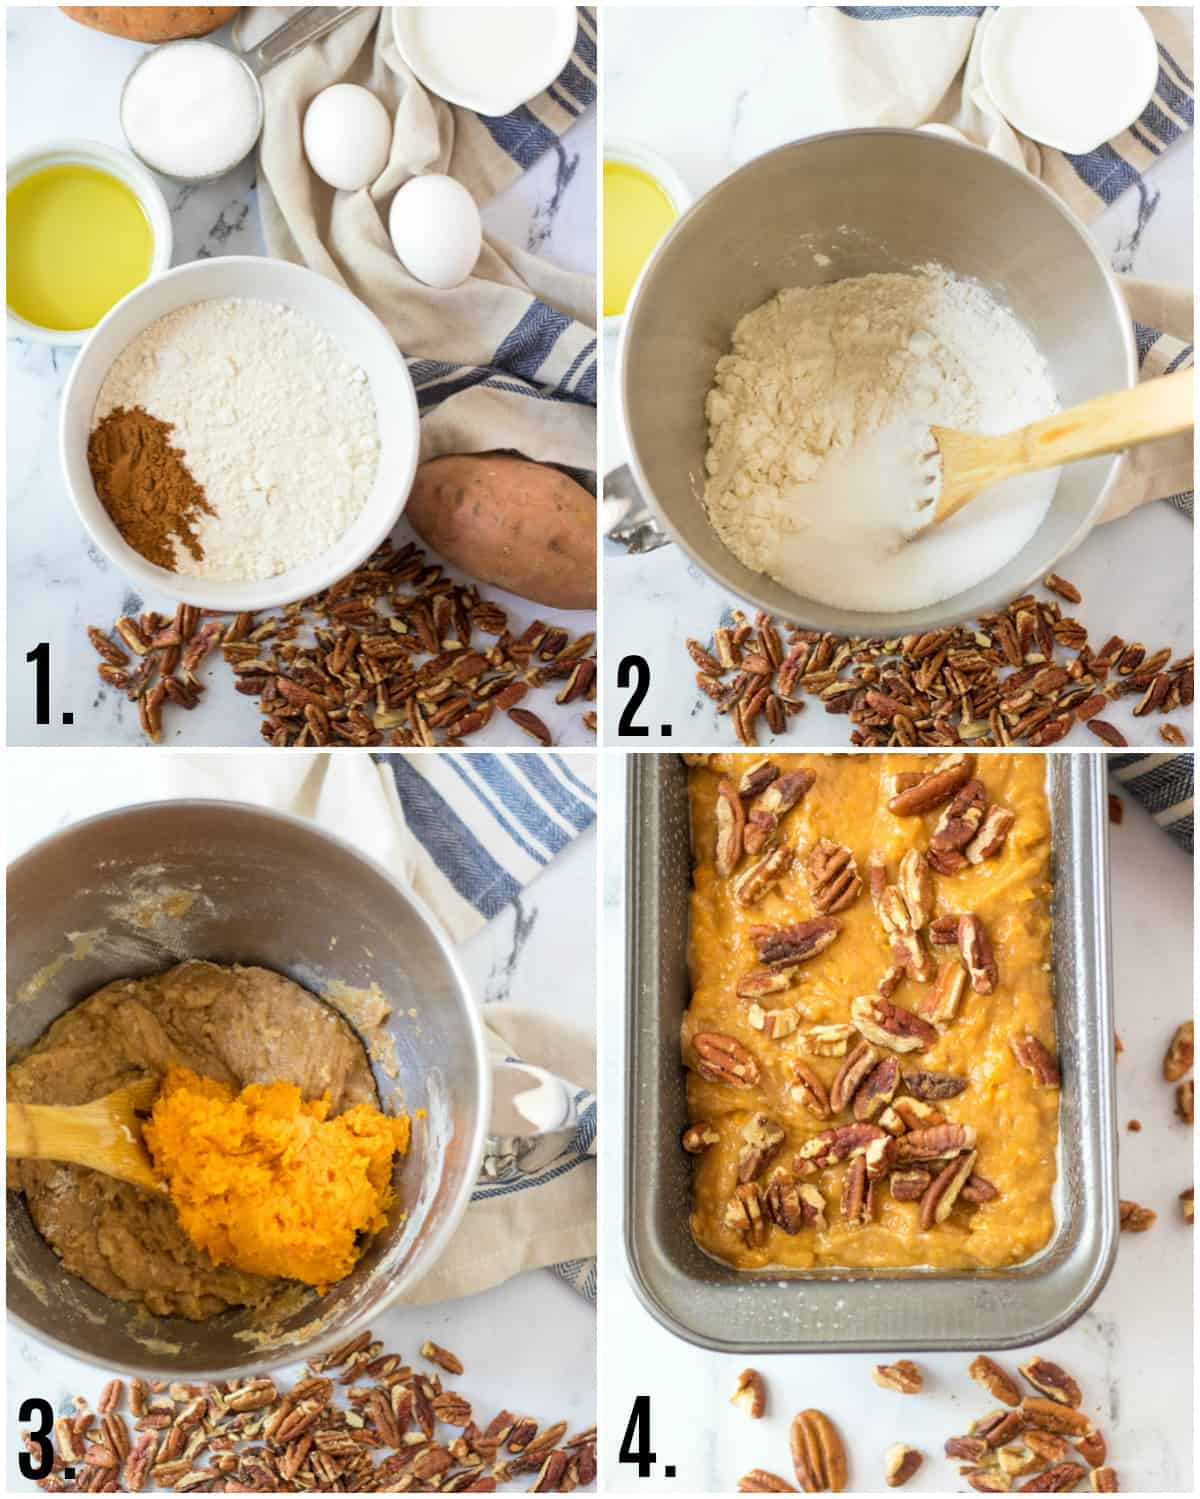 Step by step photos on how to make Sweet Potato Bread